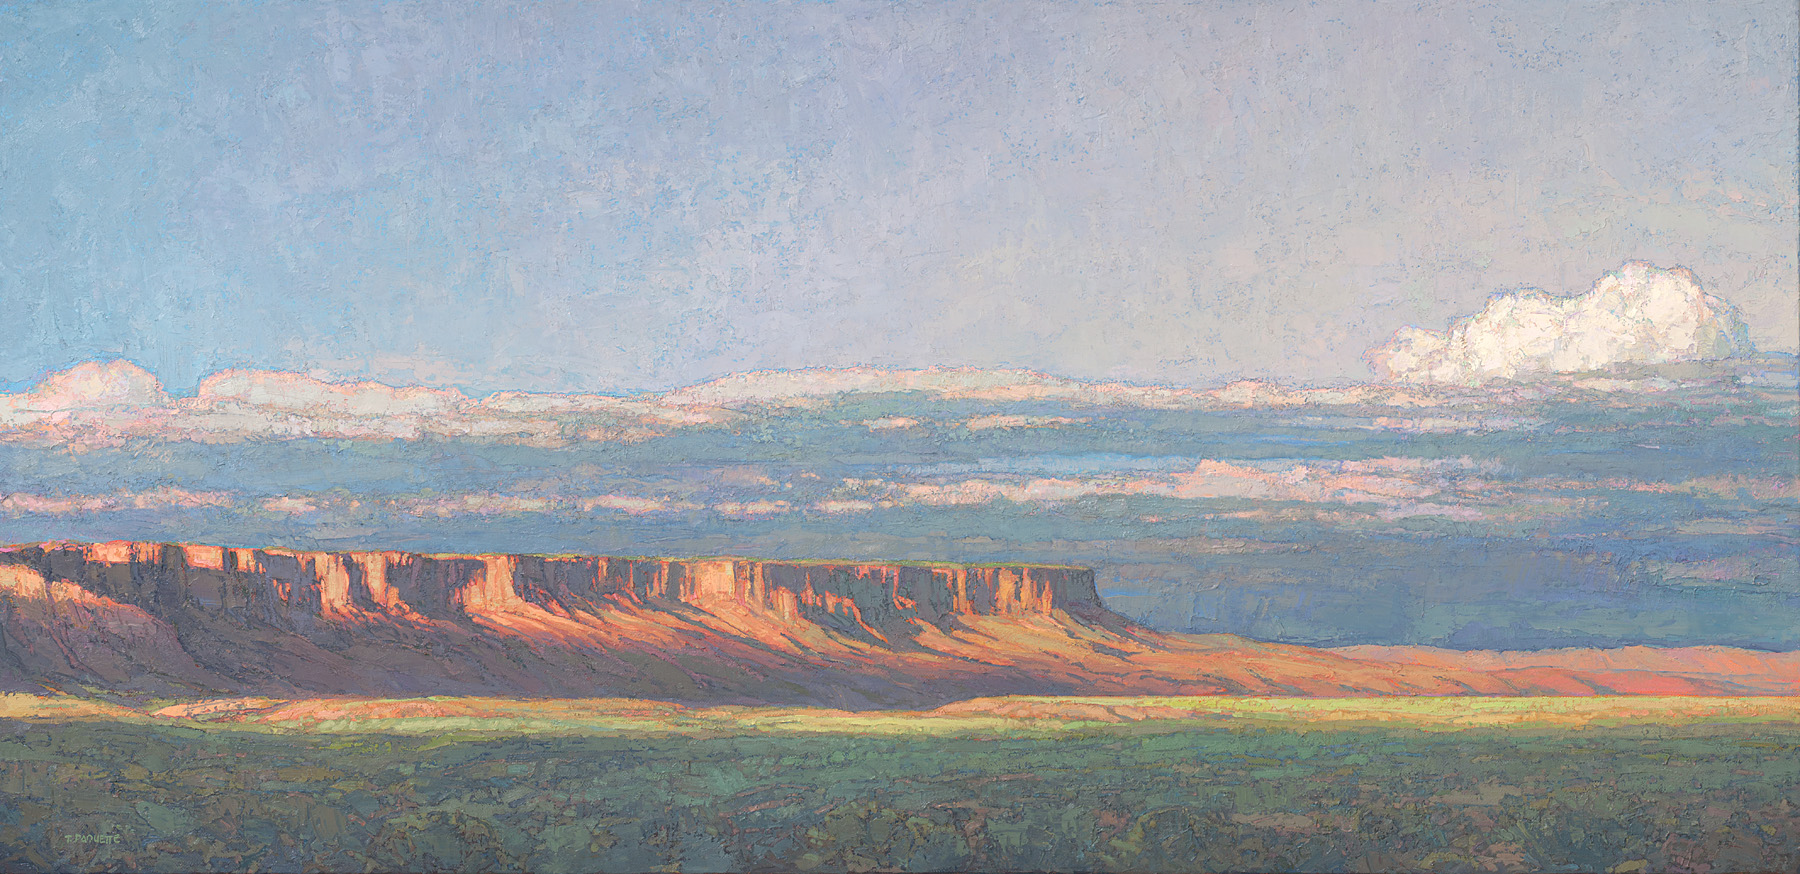 contemporary landscape oil painting of Vermilion Cliffs Wilderness Area, AZ